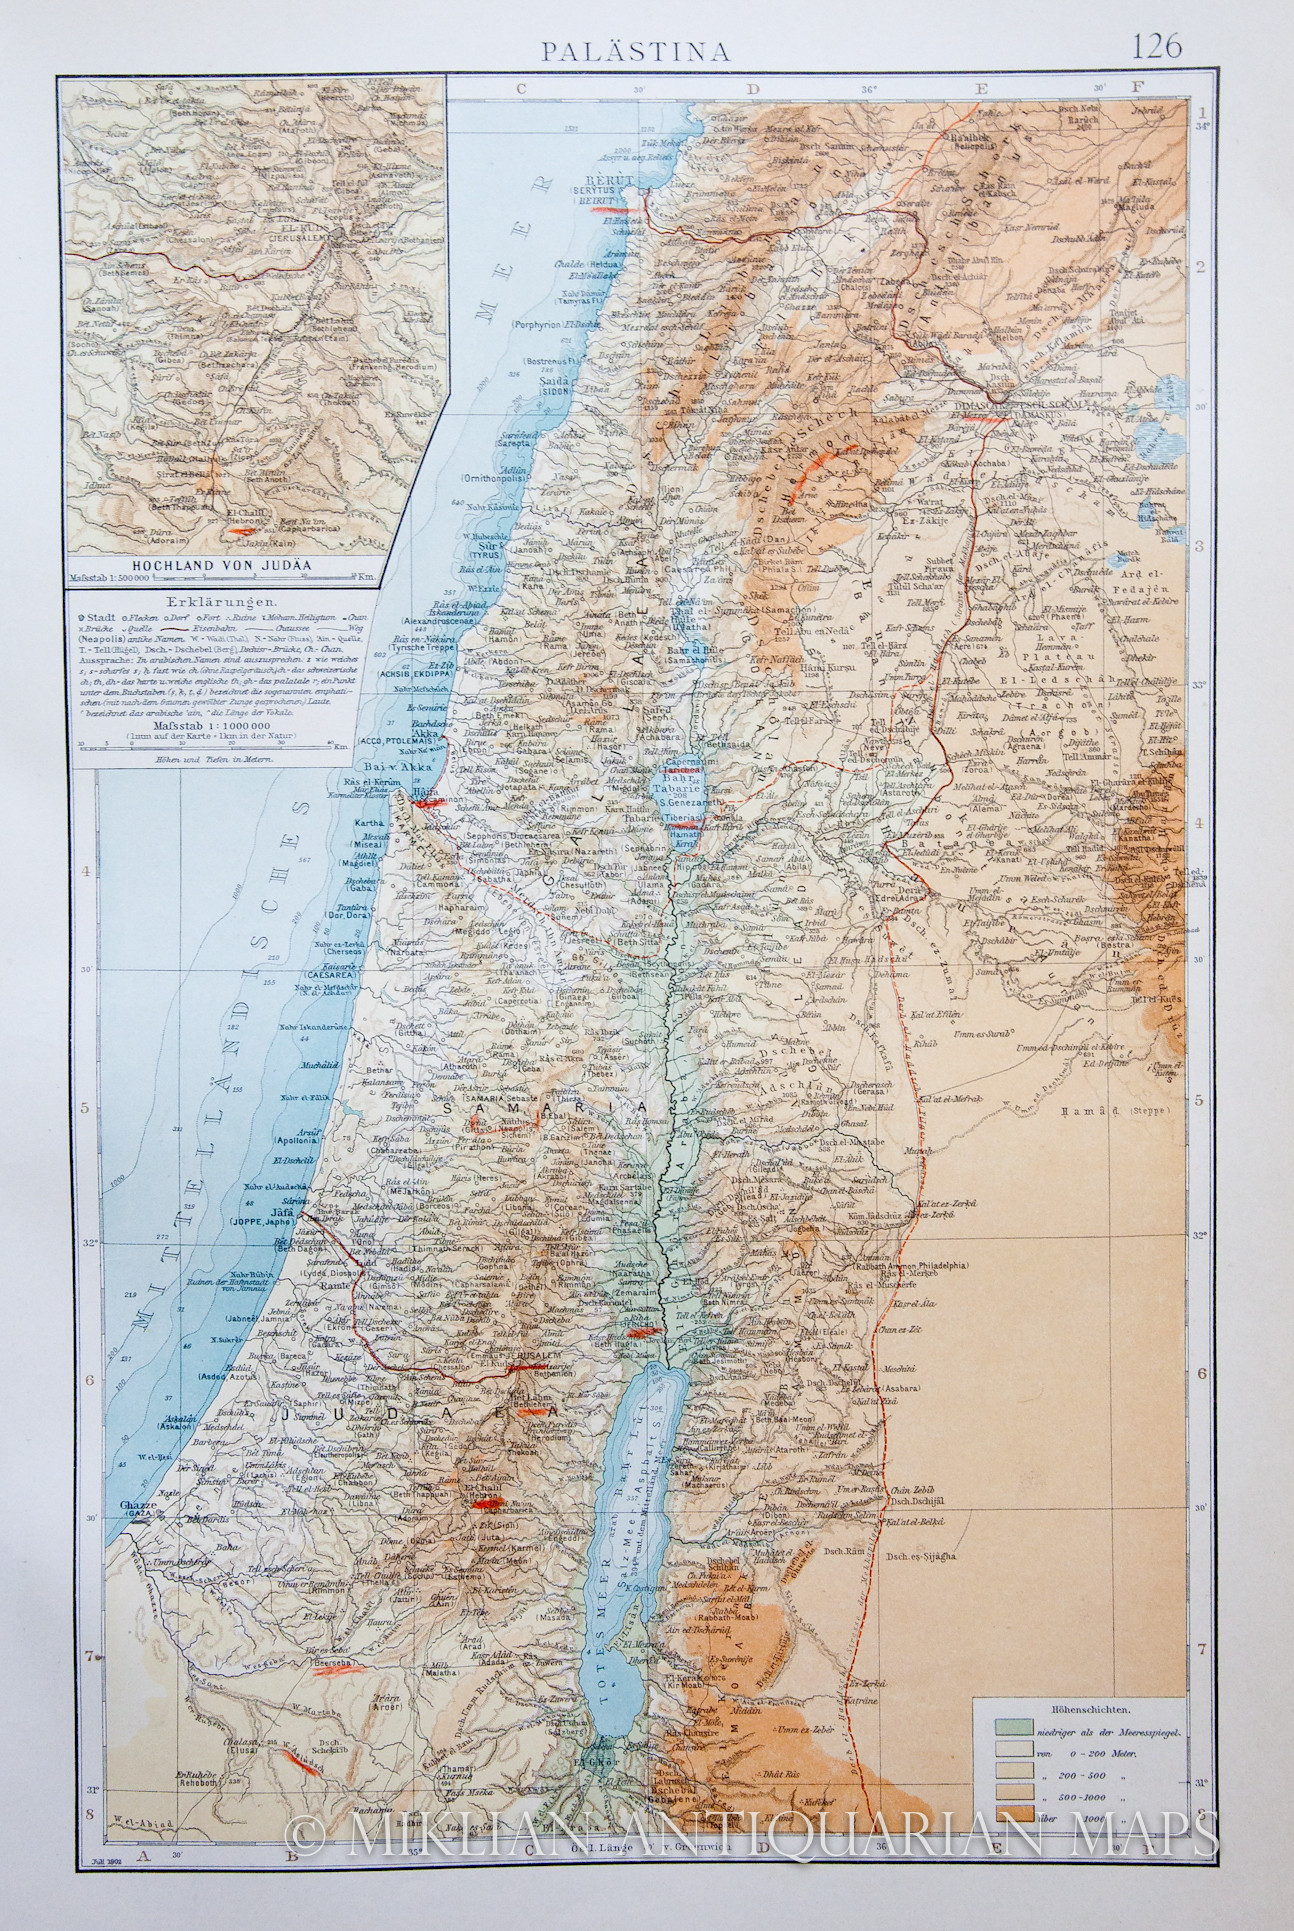 1294x1931 Palestine In The Time Of Jesus Map Reference Download Wallpaper High Full  Hd Map Od Palestine